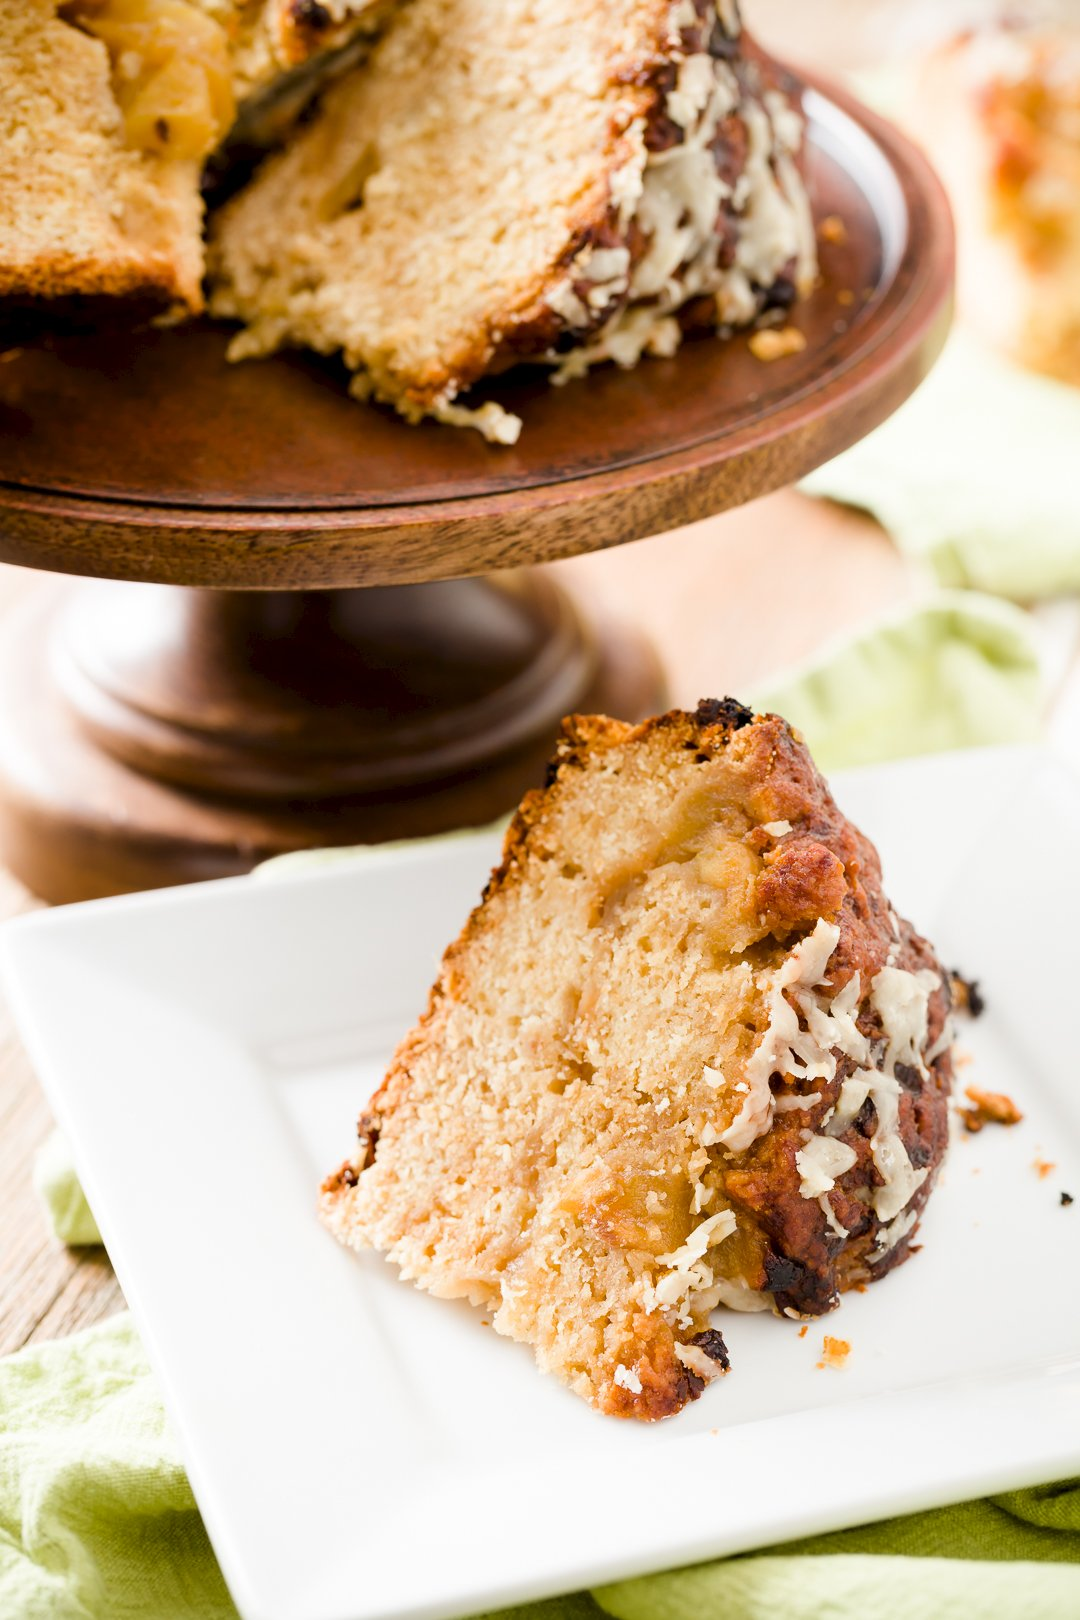 Caramel Apple + Cheddar Soda Bread